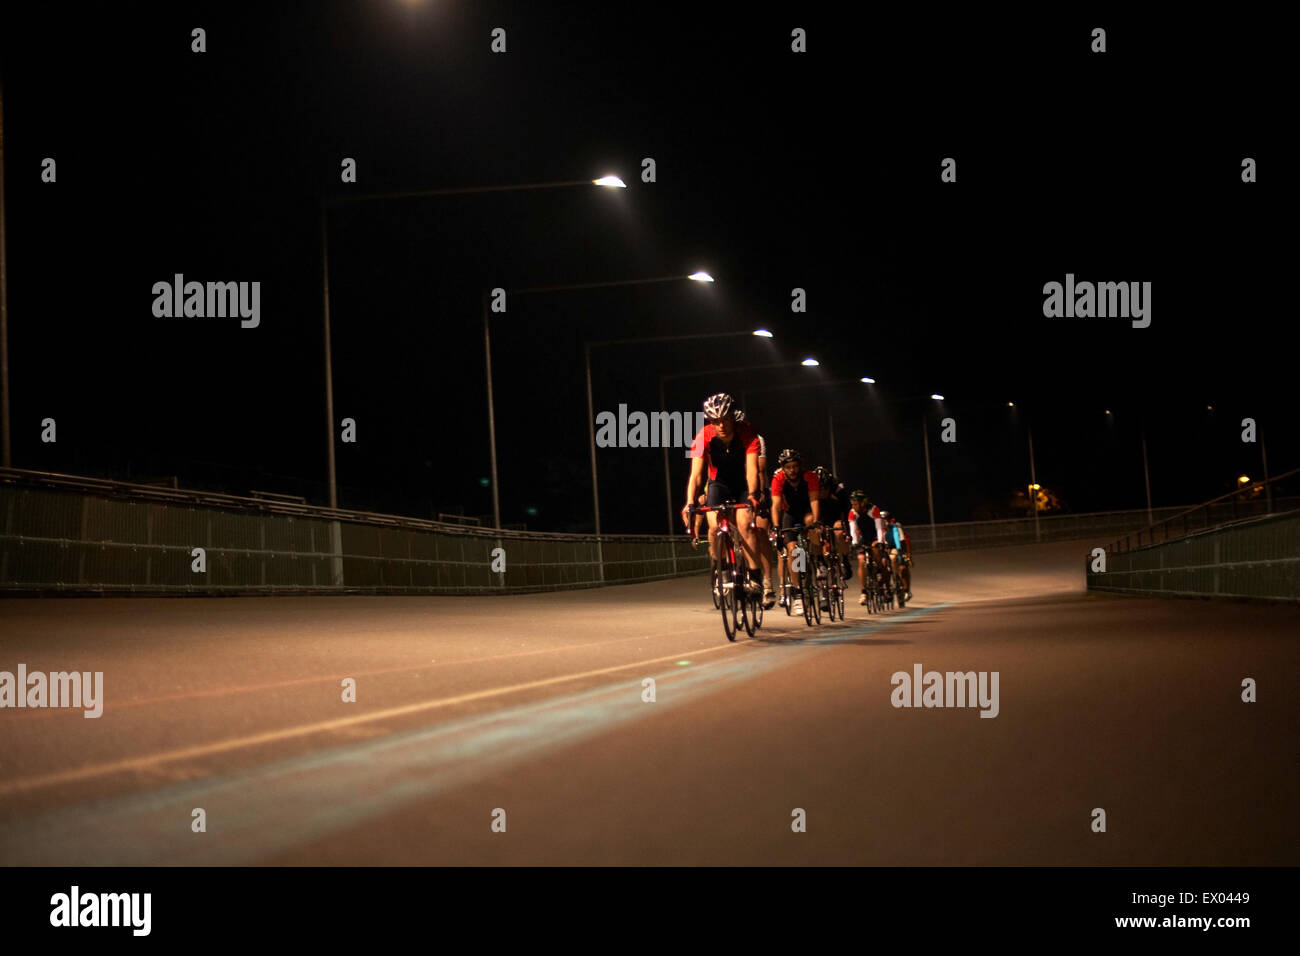 Cyclists cycling on track at velodrome, outdoors Stock Photo